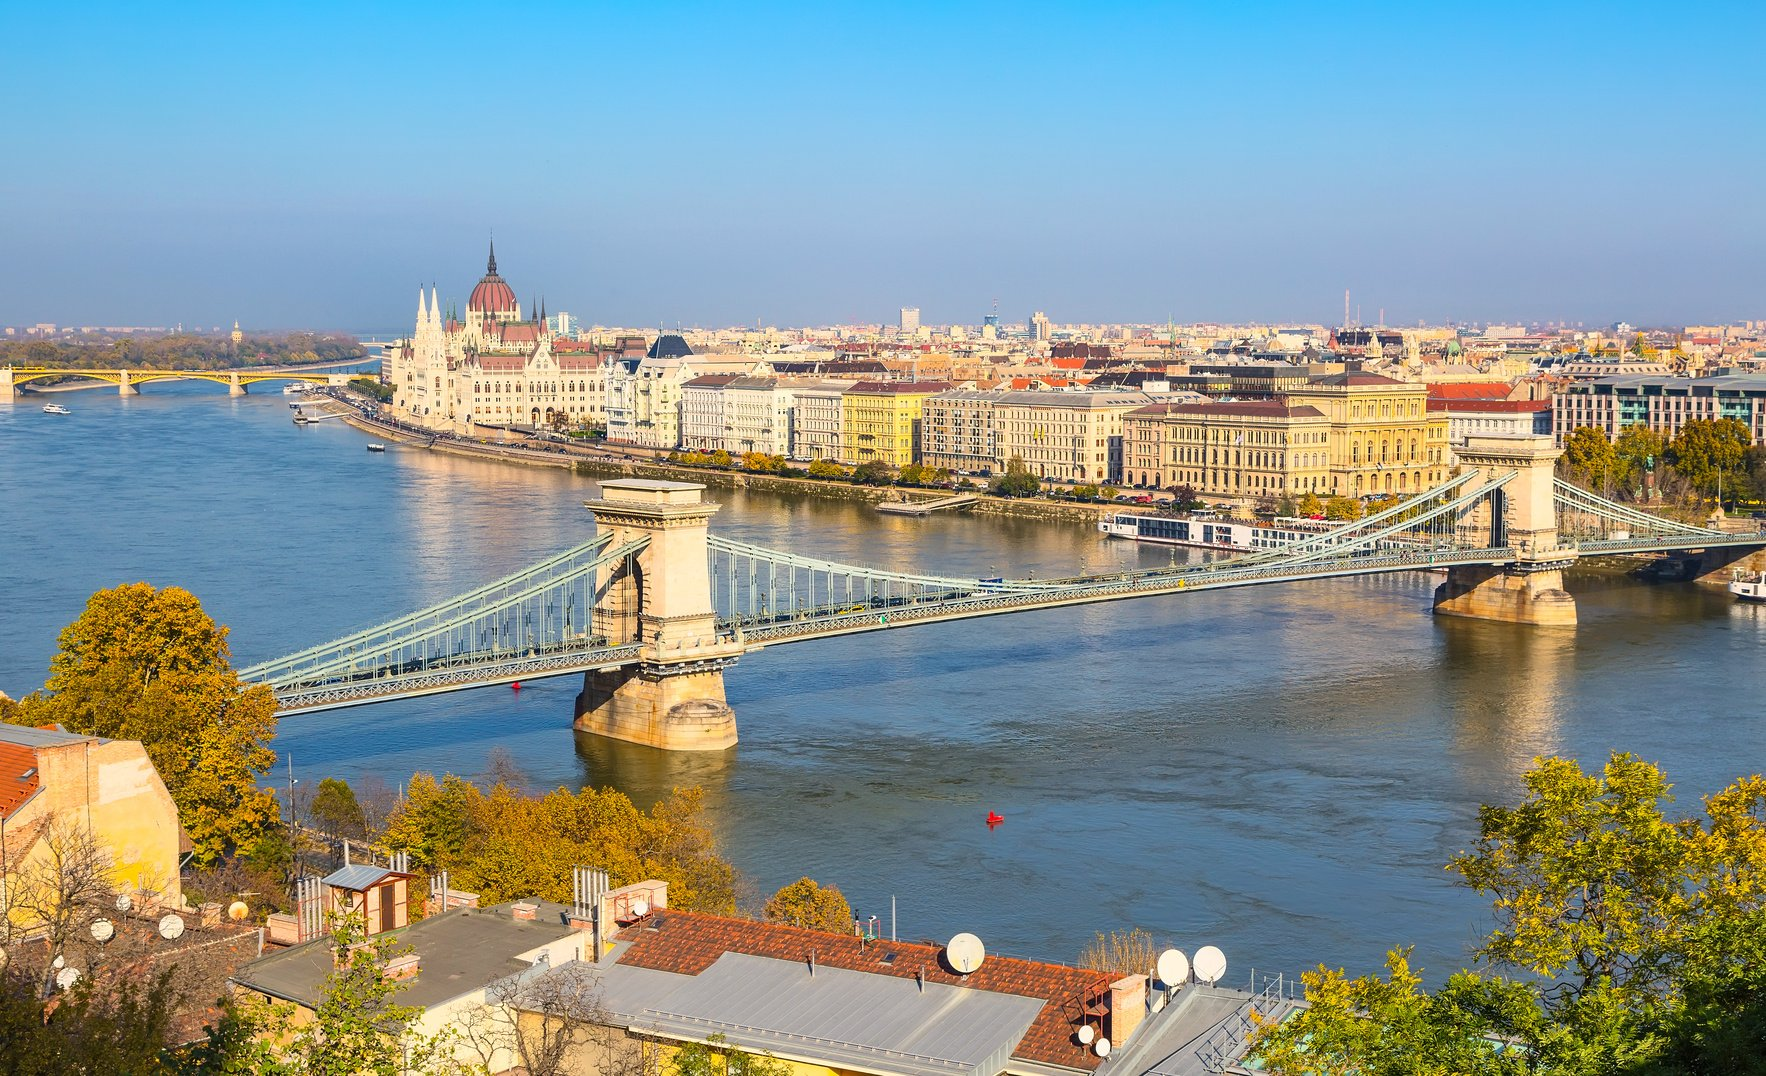 skyline panorama of Budapest, Hungary with Danube, chain bridge, ships and houses